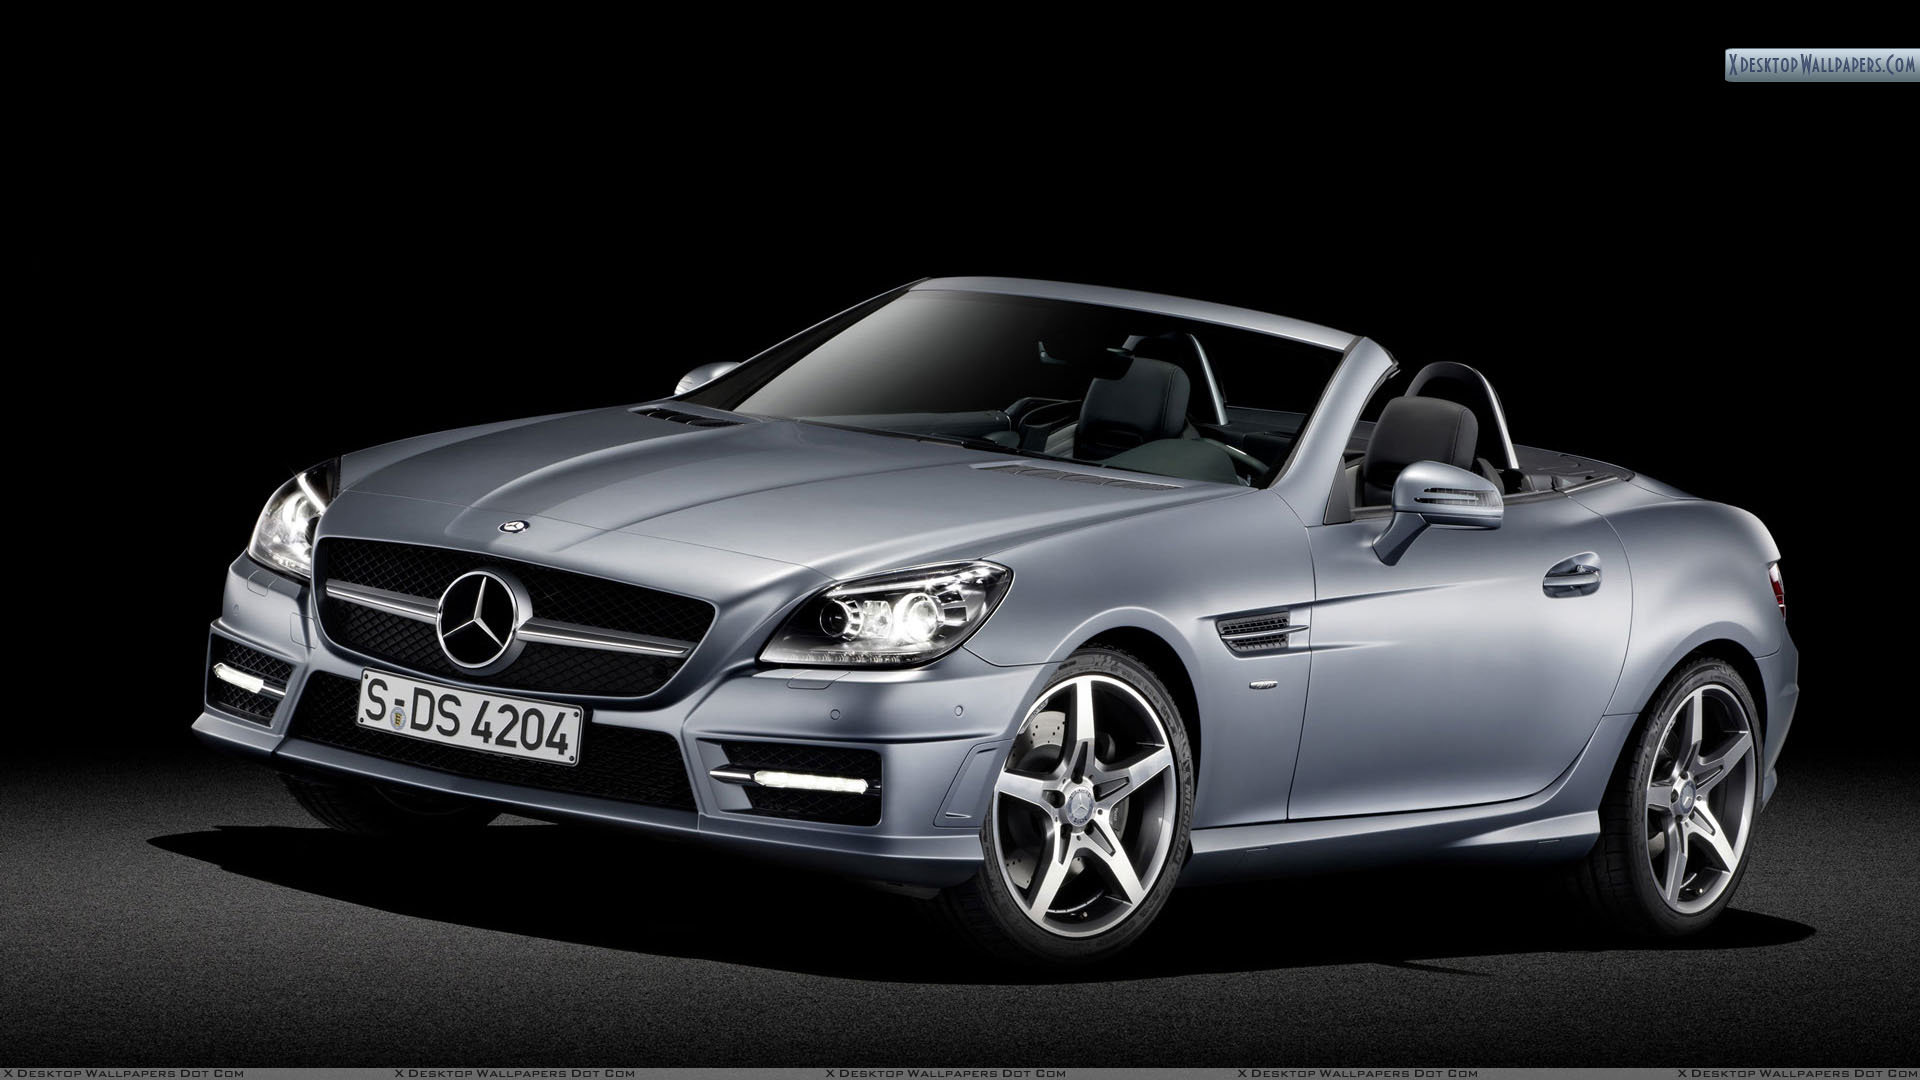 front side view of silver mercedes benz slk 350 wallpaper. Black Bedroom Furniture Sets. Home Design Ideas